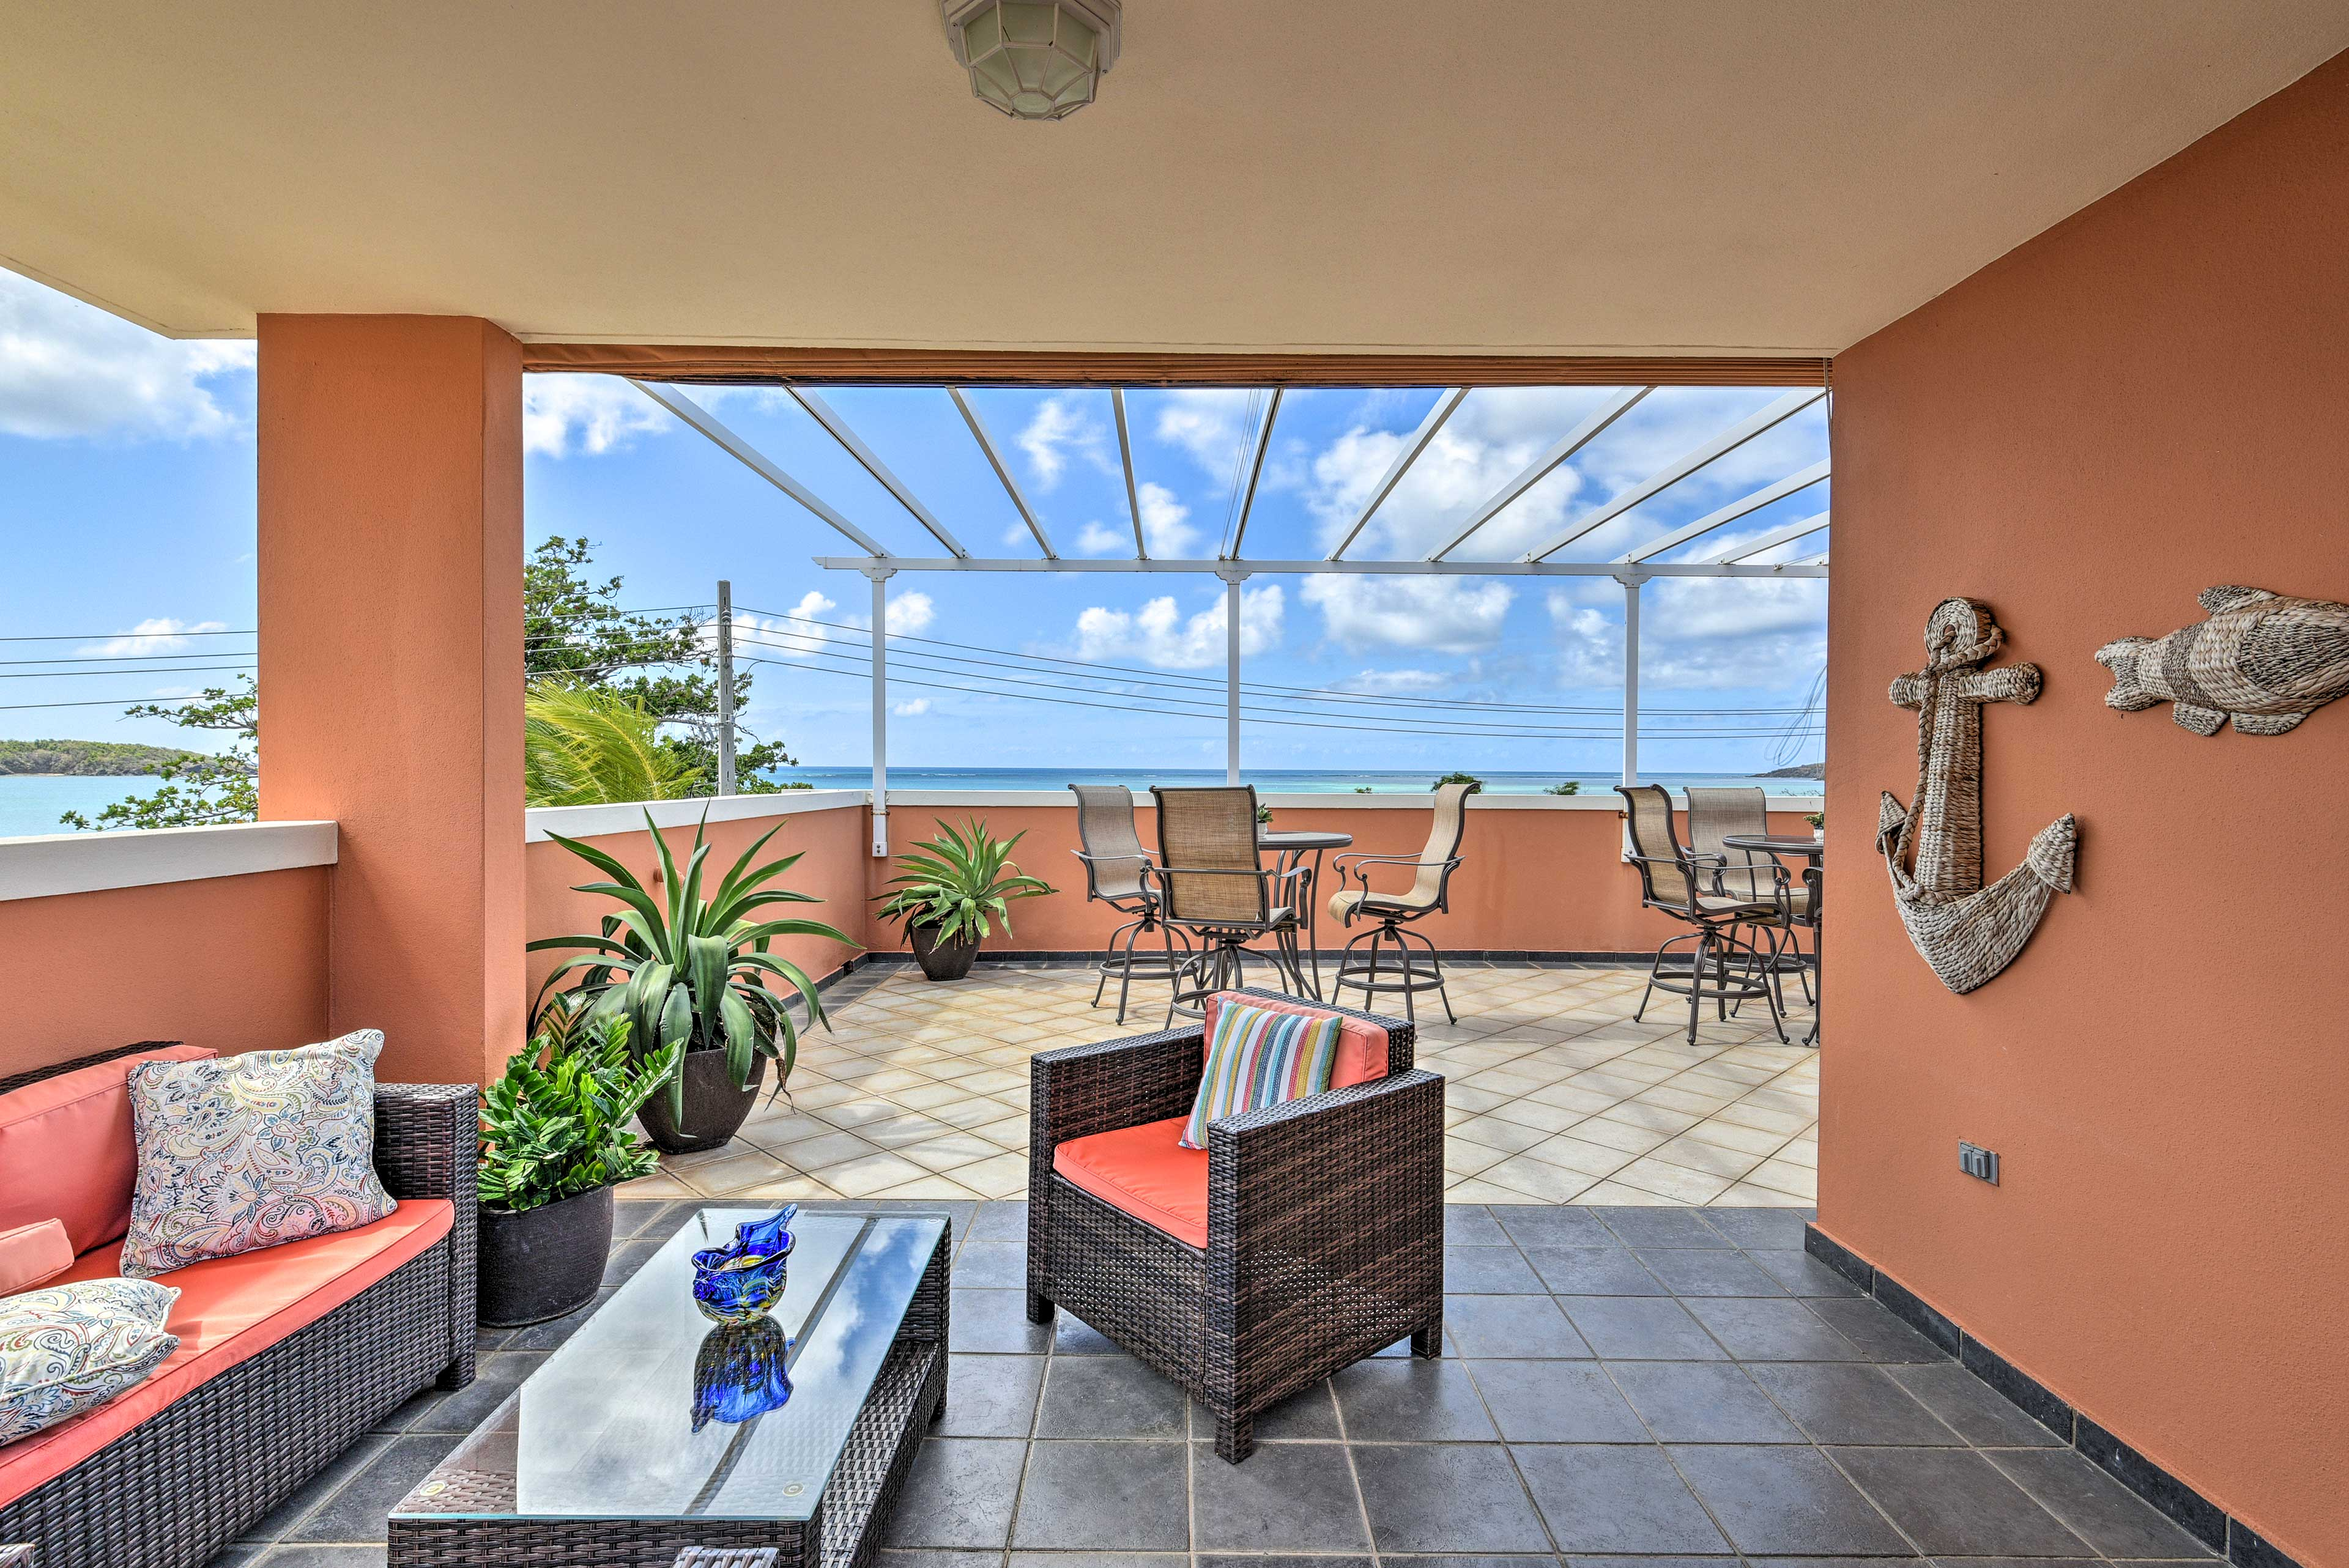 Nothing beats the third-floor terrace with a covered sitting area.